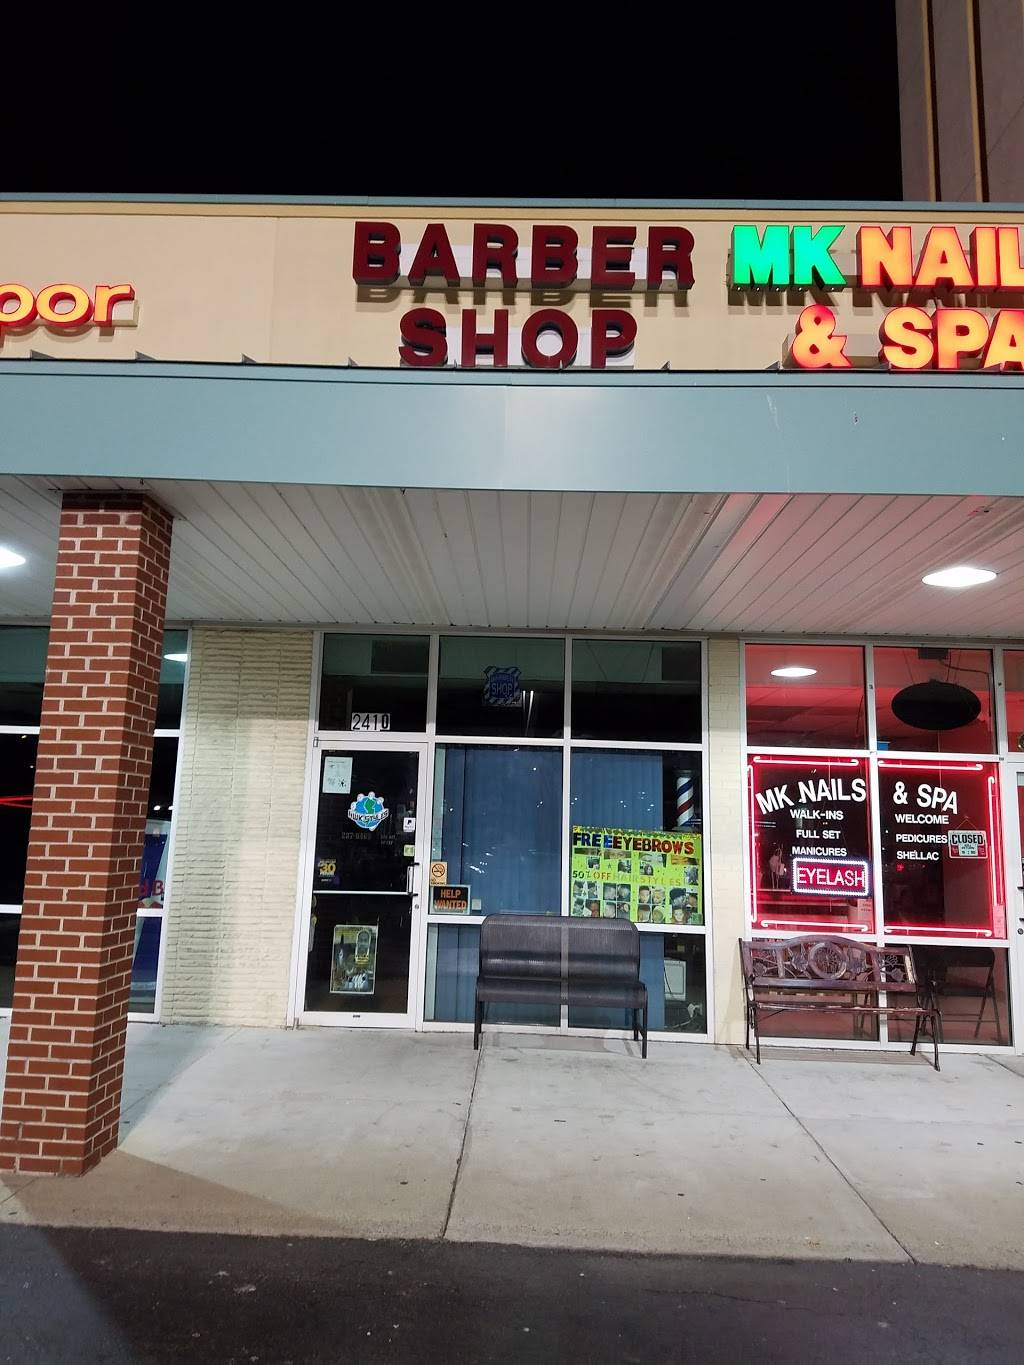 NWK Styles Barbershop - hair care  | Photo 1 of 9 | Address: 2410 E Little Creek Rd, Norfolk, VA 23518, USA | Phone: (757) 237-0405